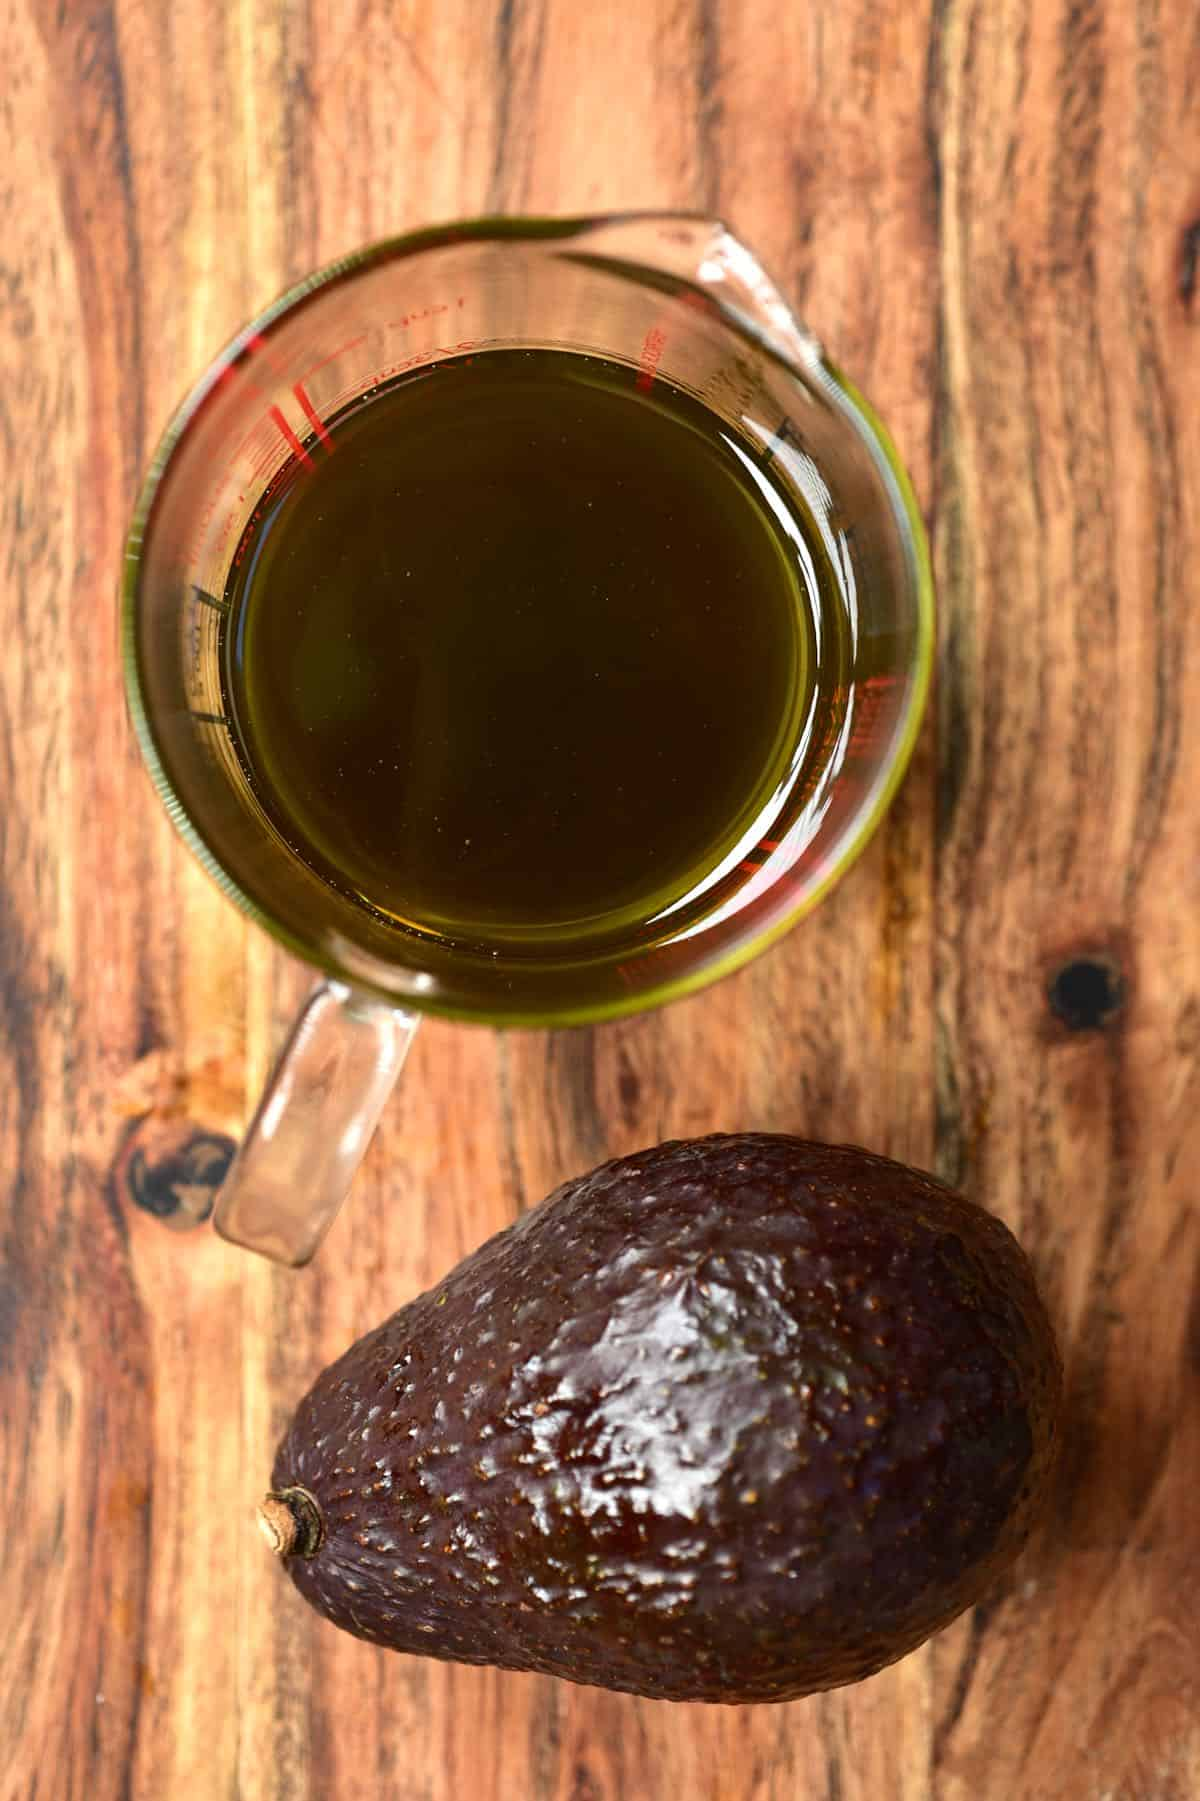 One avocado and a small jug with avocado oil